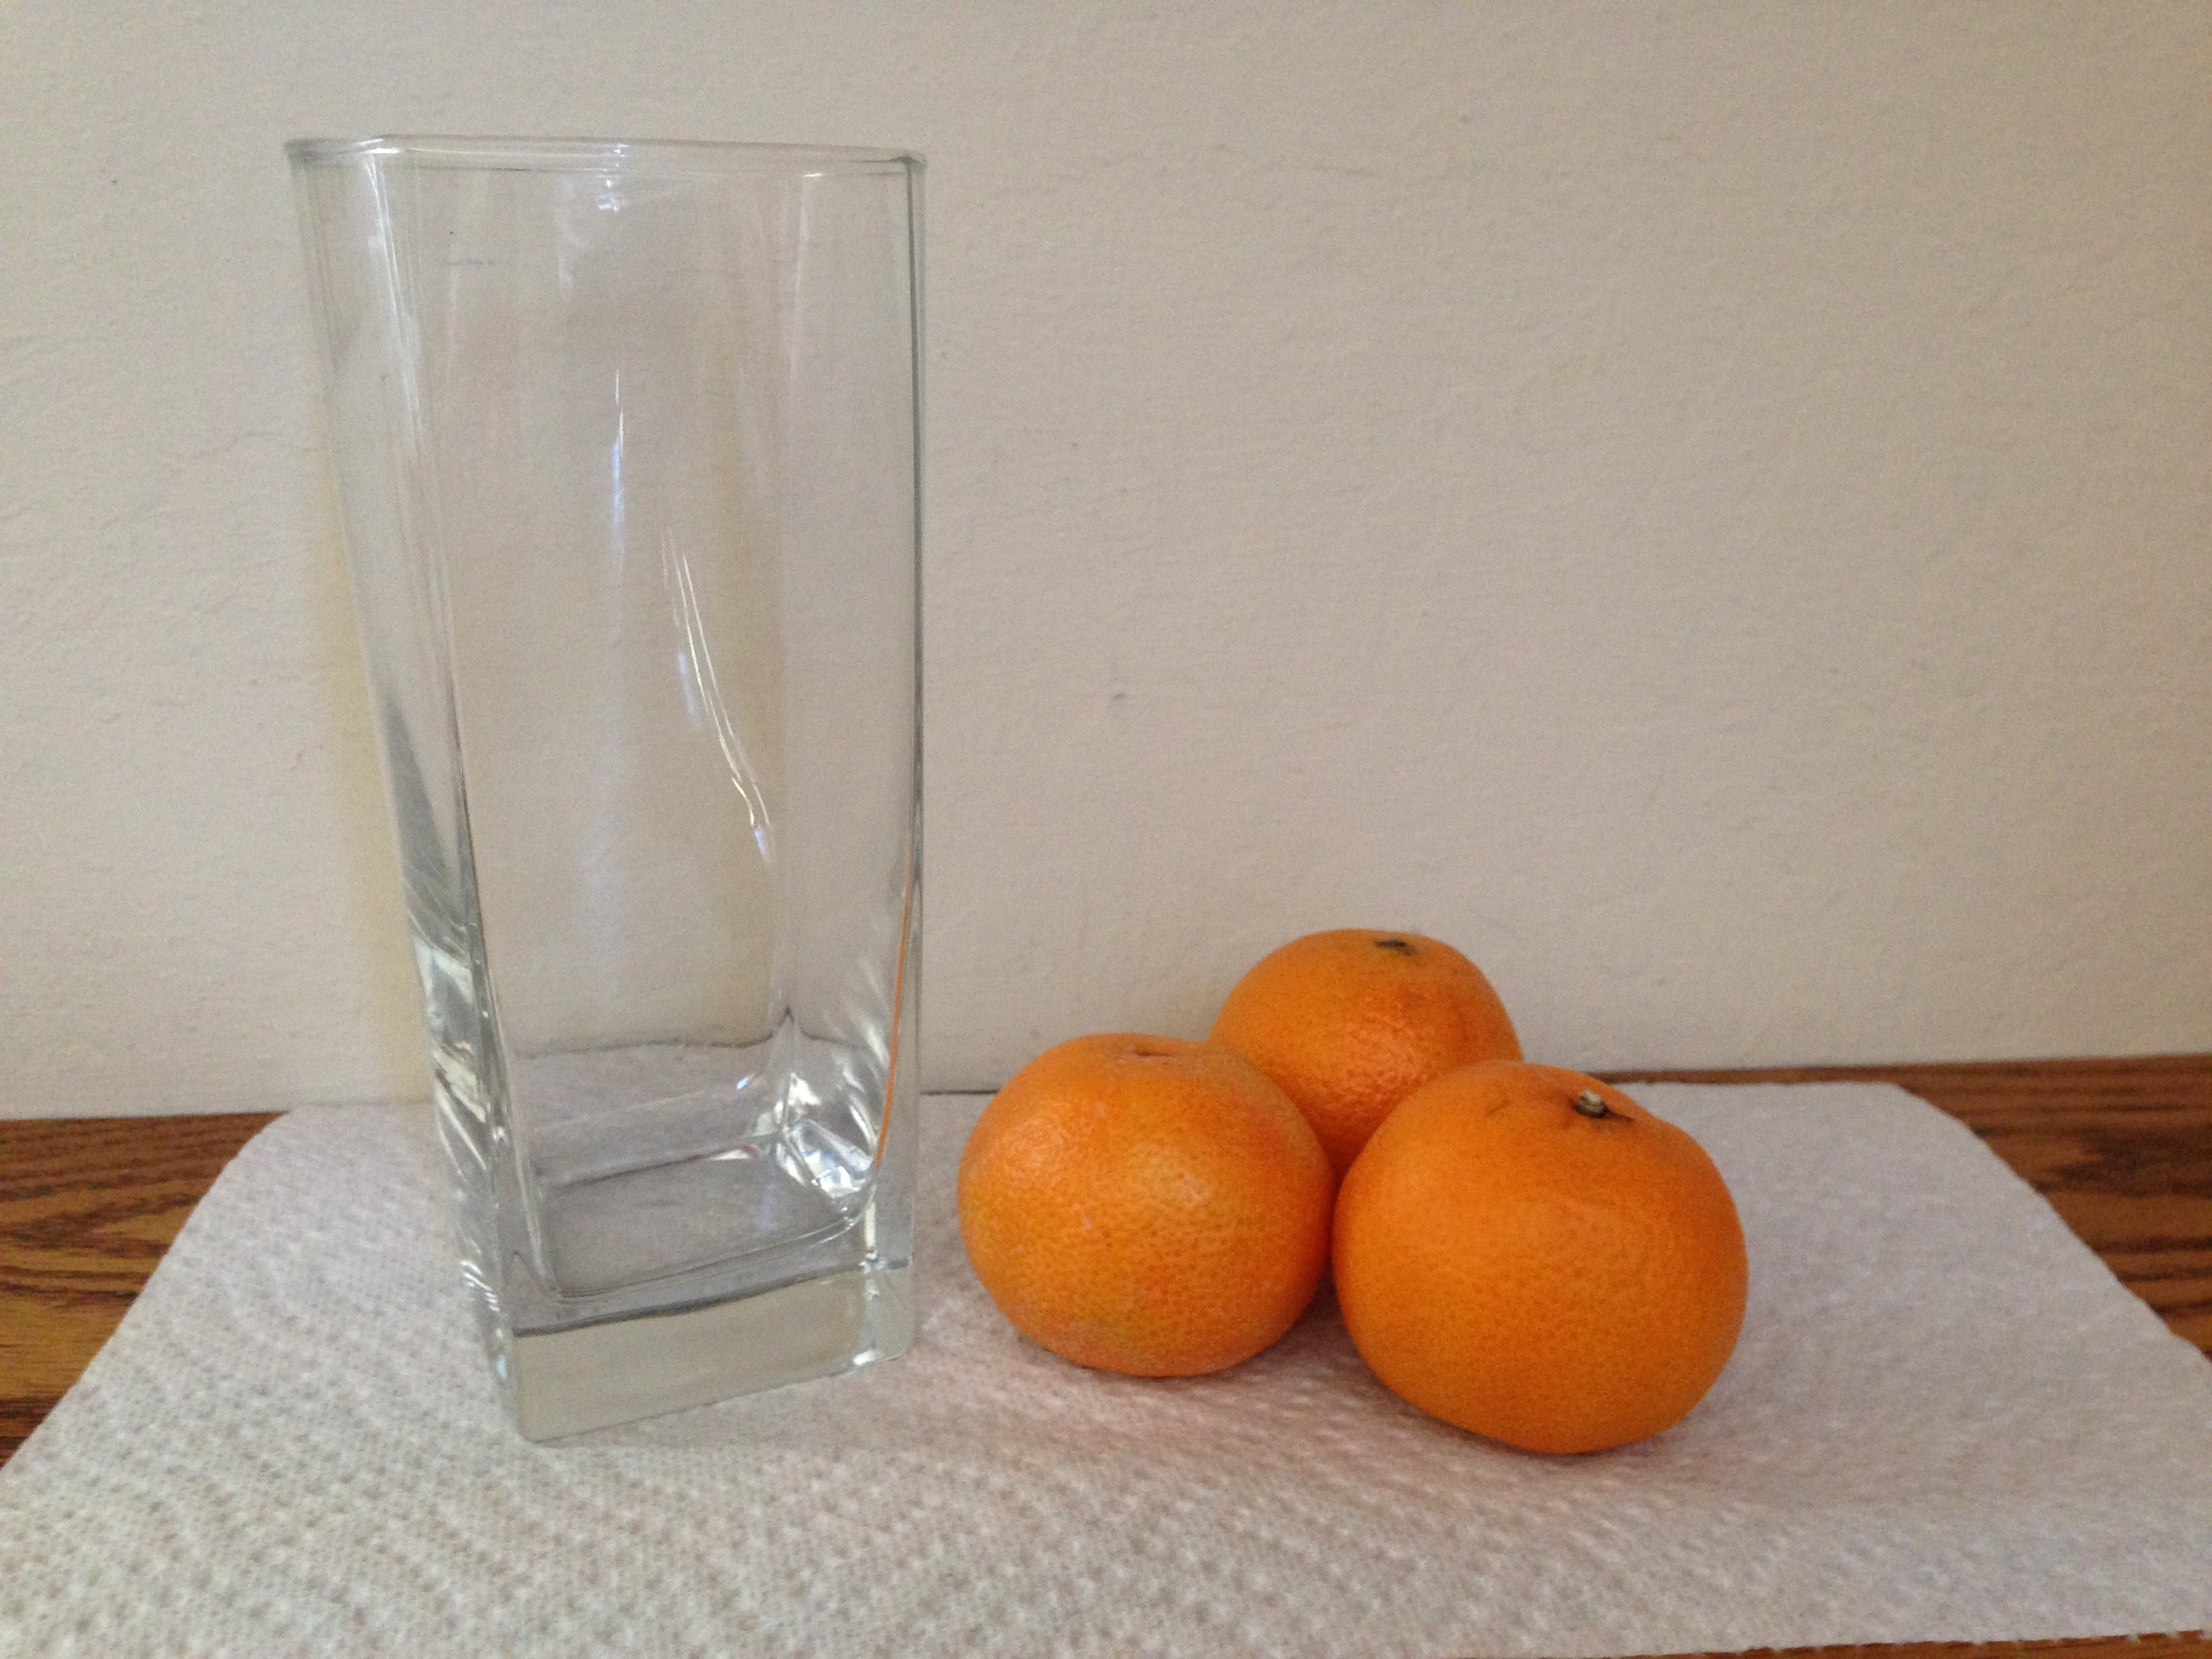 Elegant Ask Your Kids To Predict What They Think Will Happen When You Place The  Orange In The Water.